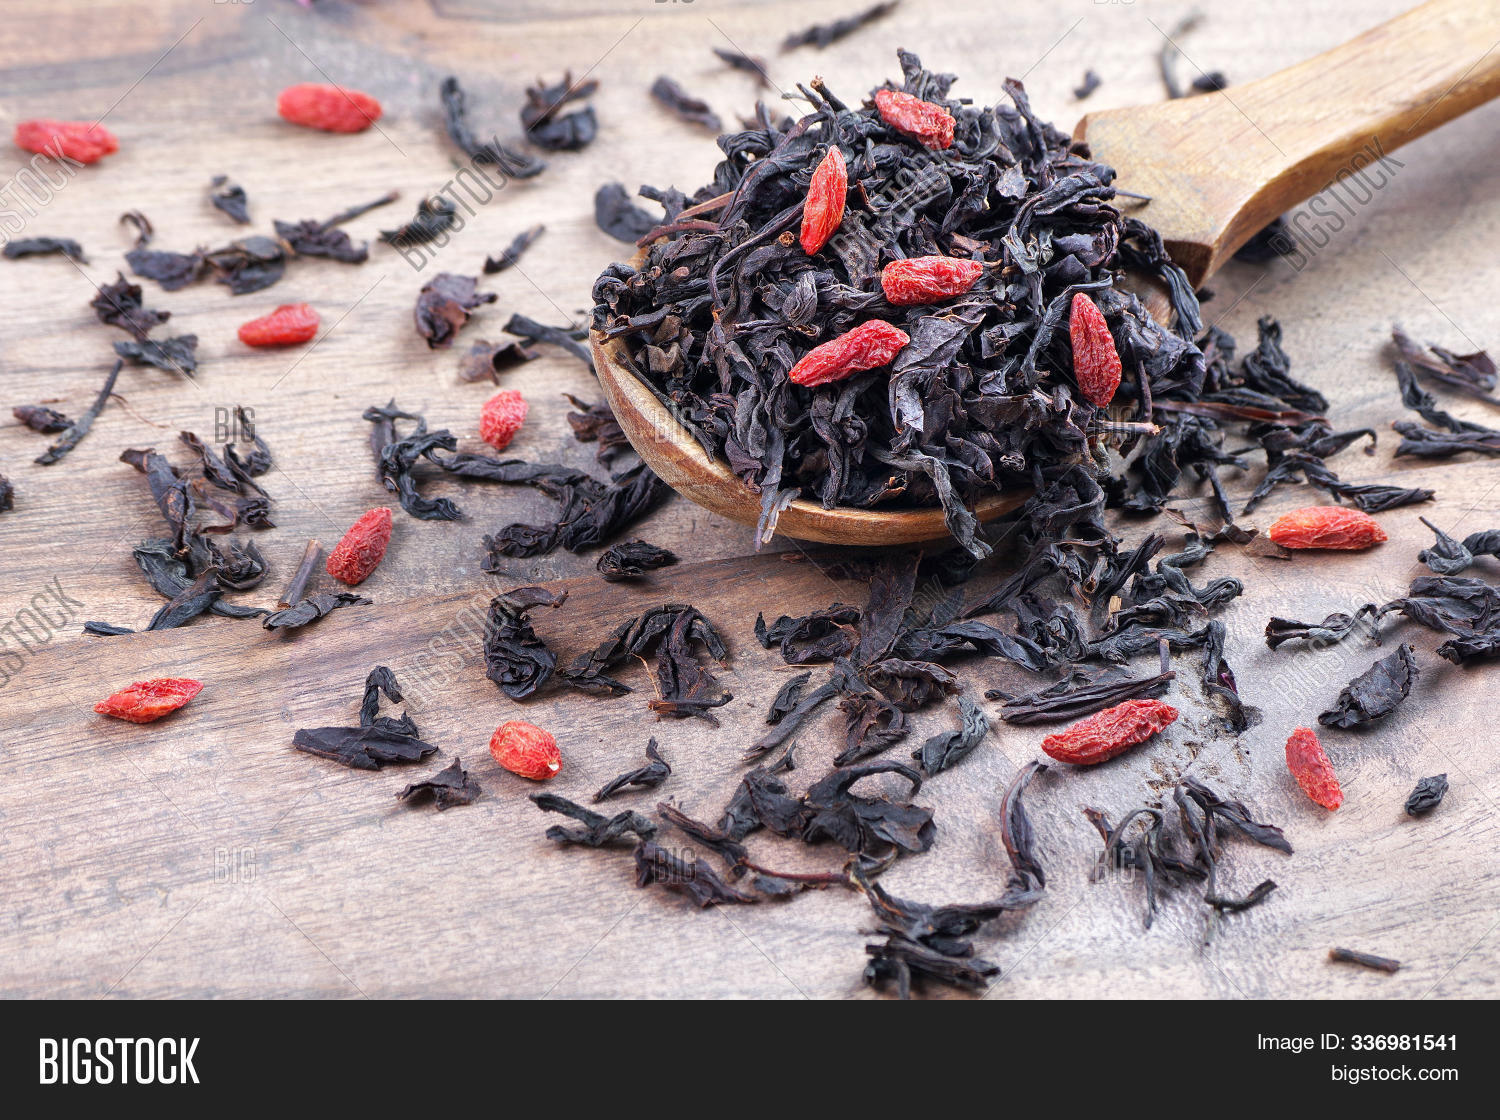 Blended Tea Dry Image Photo Free Trial Bigstock